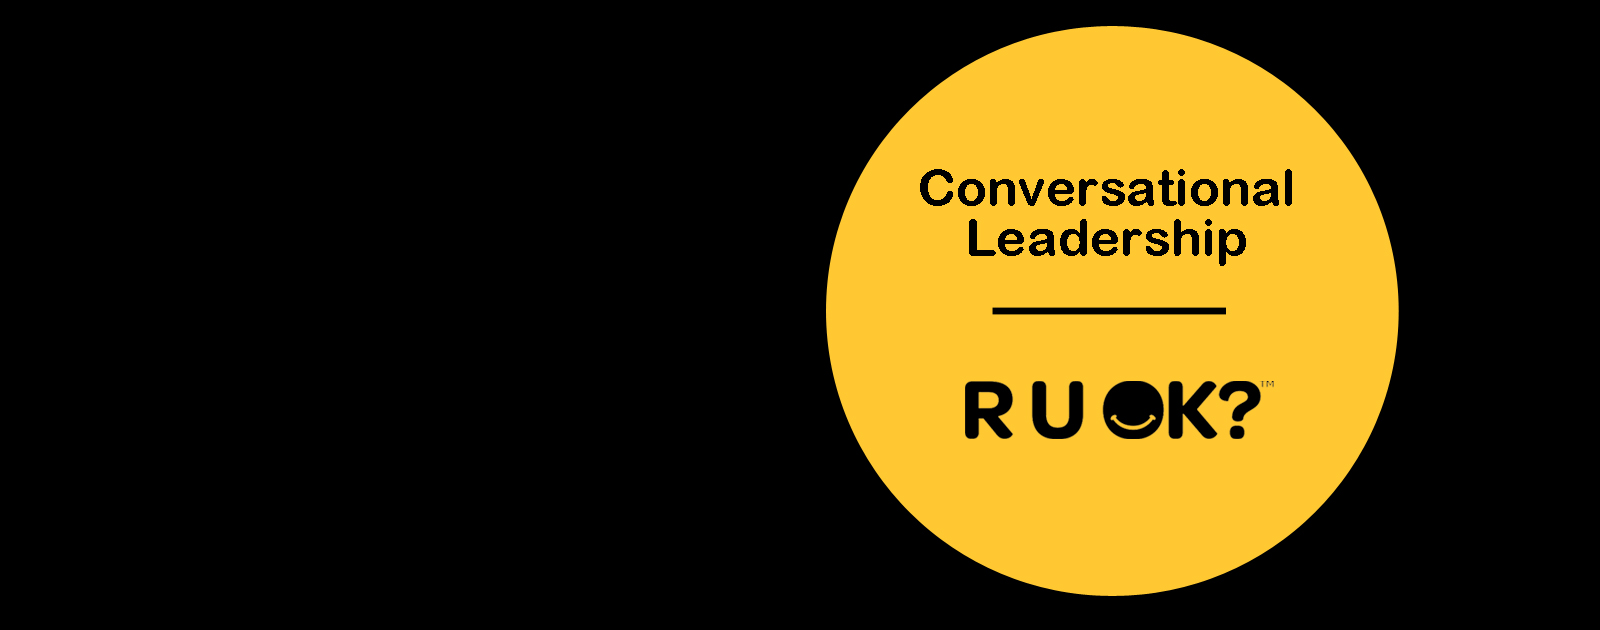 RUOK-Conversational-Leadership